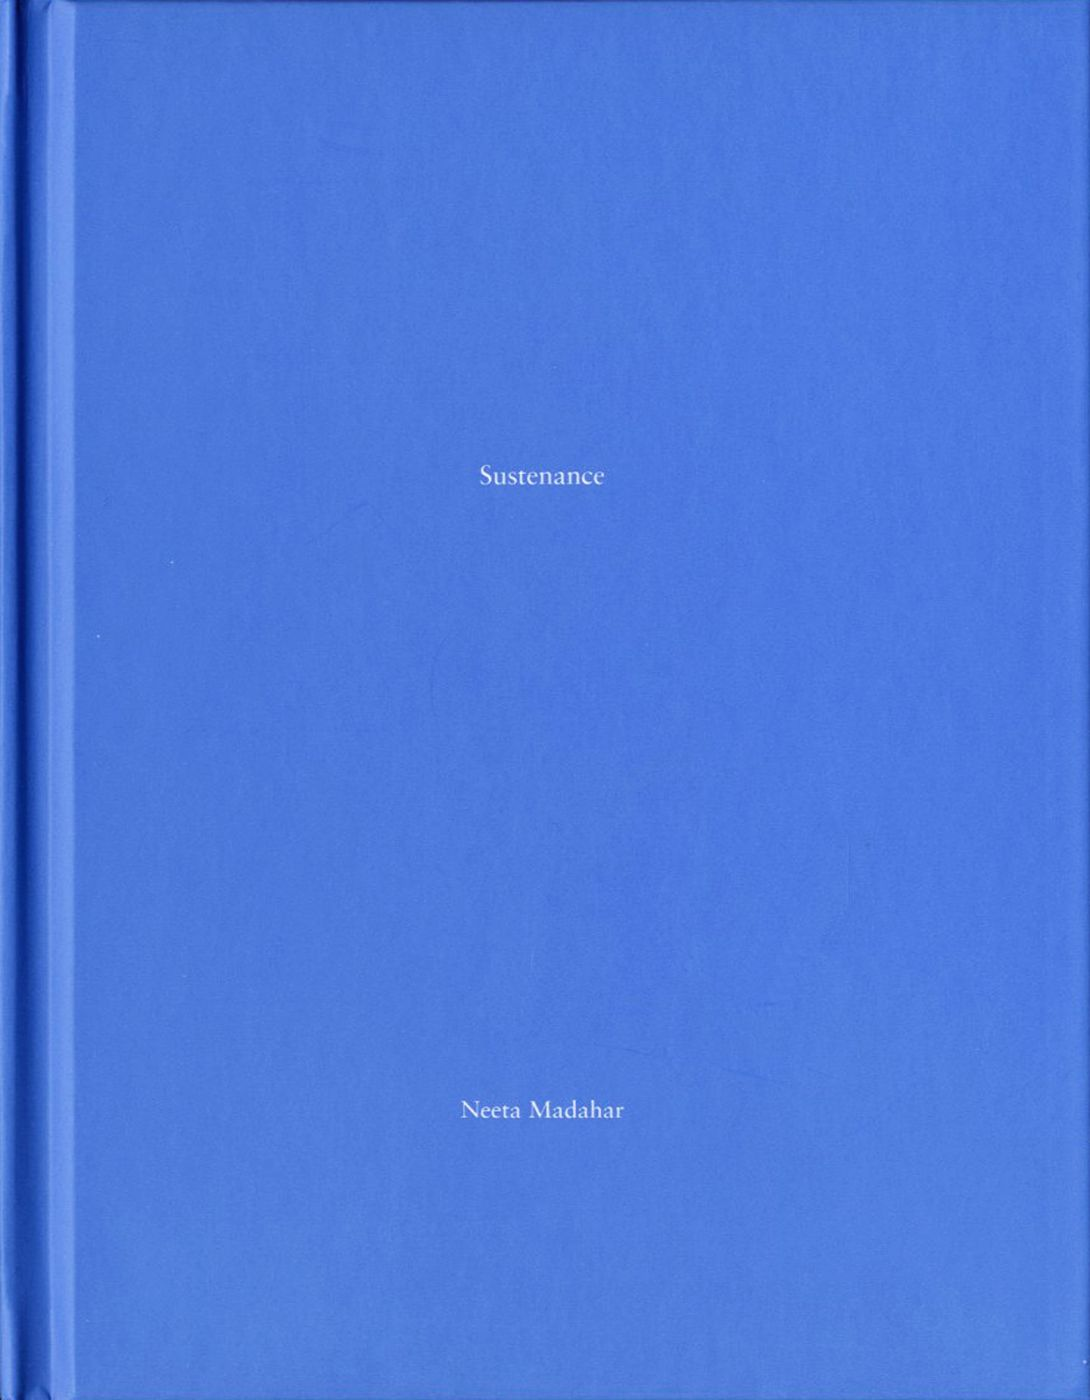 Neeta Madahar: Sustenance (One Picture Book #51), Limited Edition (with Print)